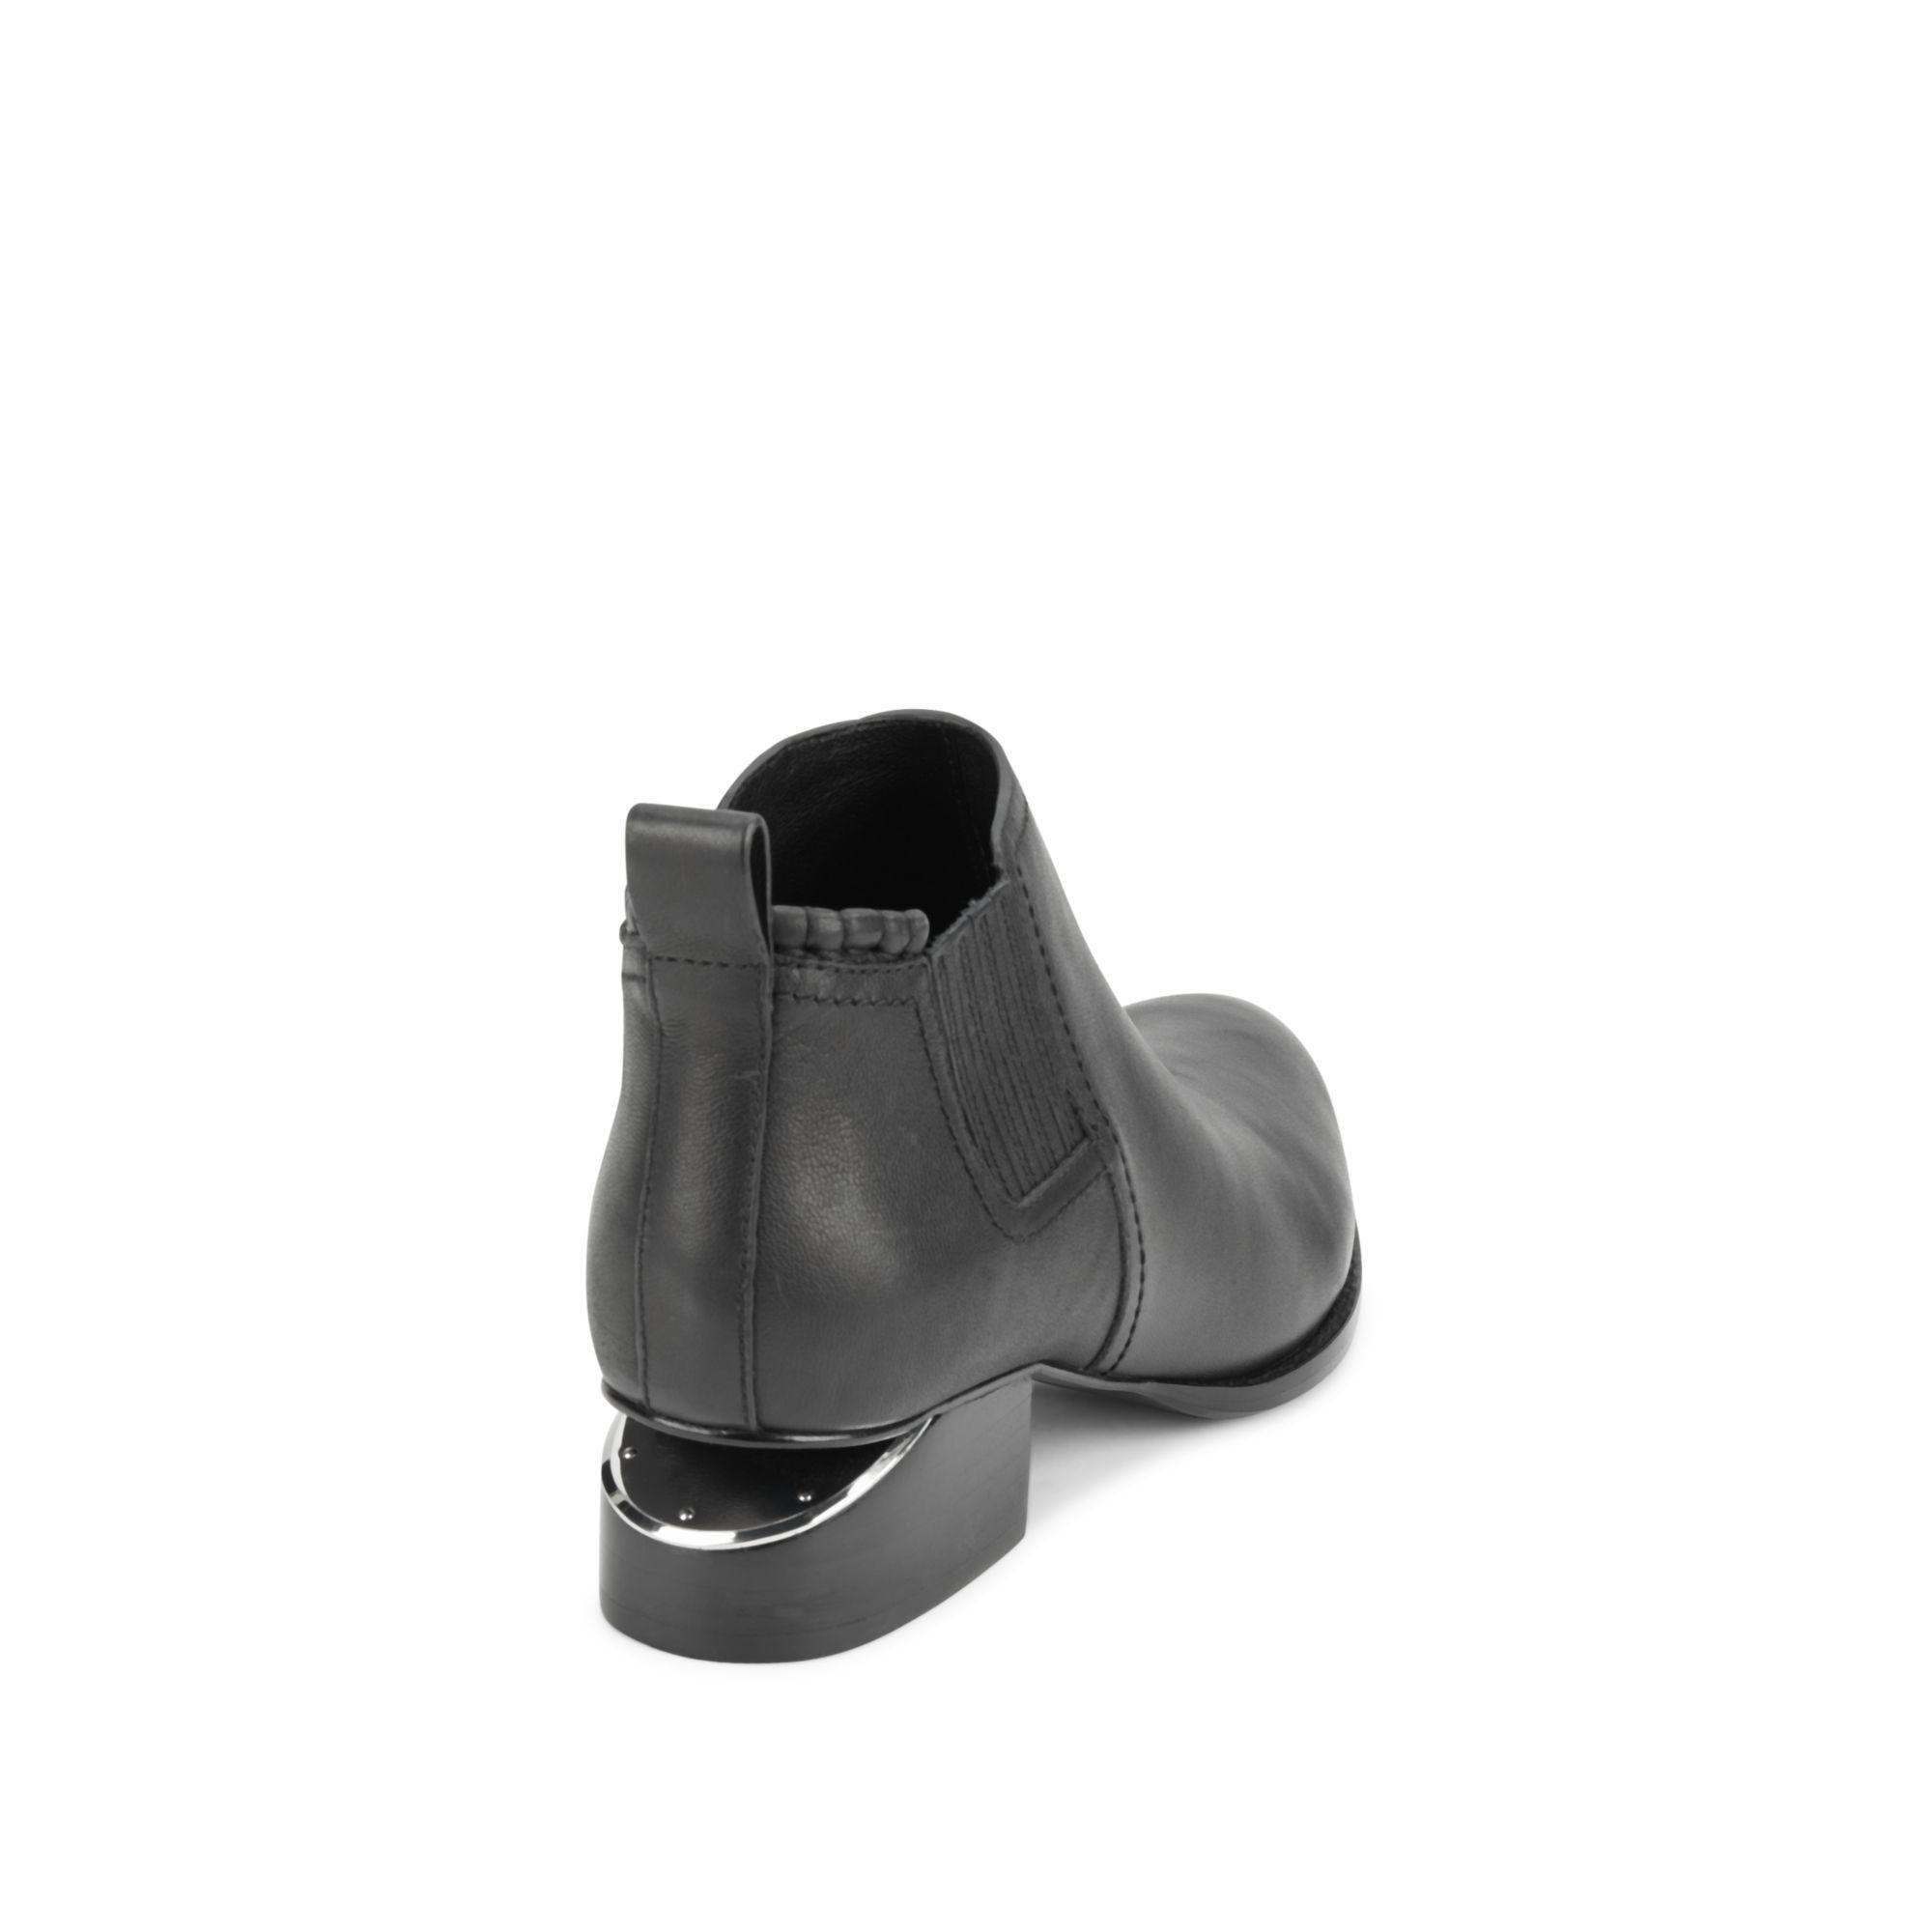 Alexander Wang Oxford-inspired Leather Boots in Black